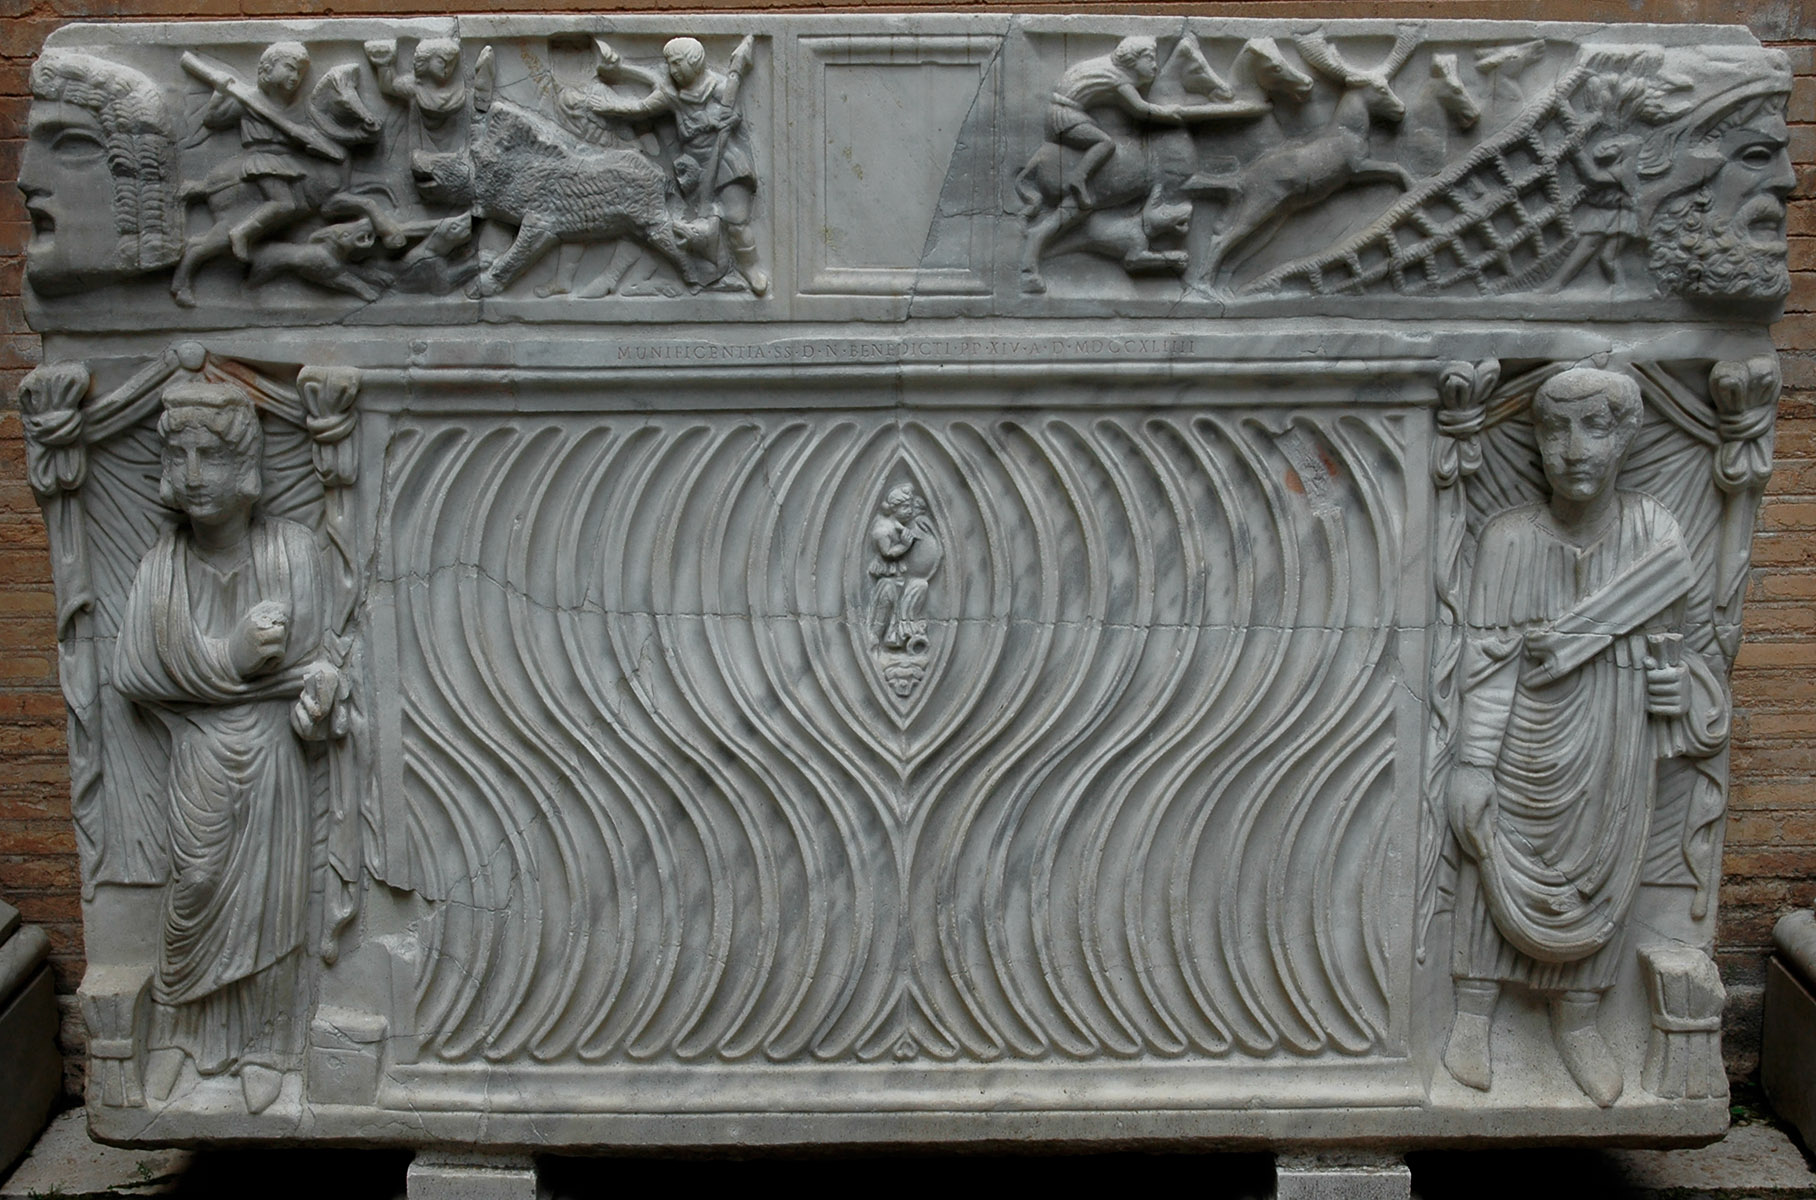 Sarcophagus strigilato. Marble. Second half of the 3rd century. Inv. No. MC9. Rome, Capitoline Museums, Palazzo Nuovo, Courtyard